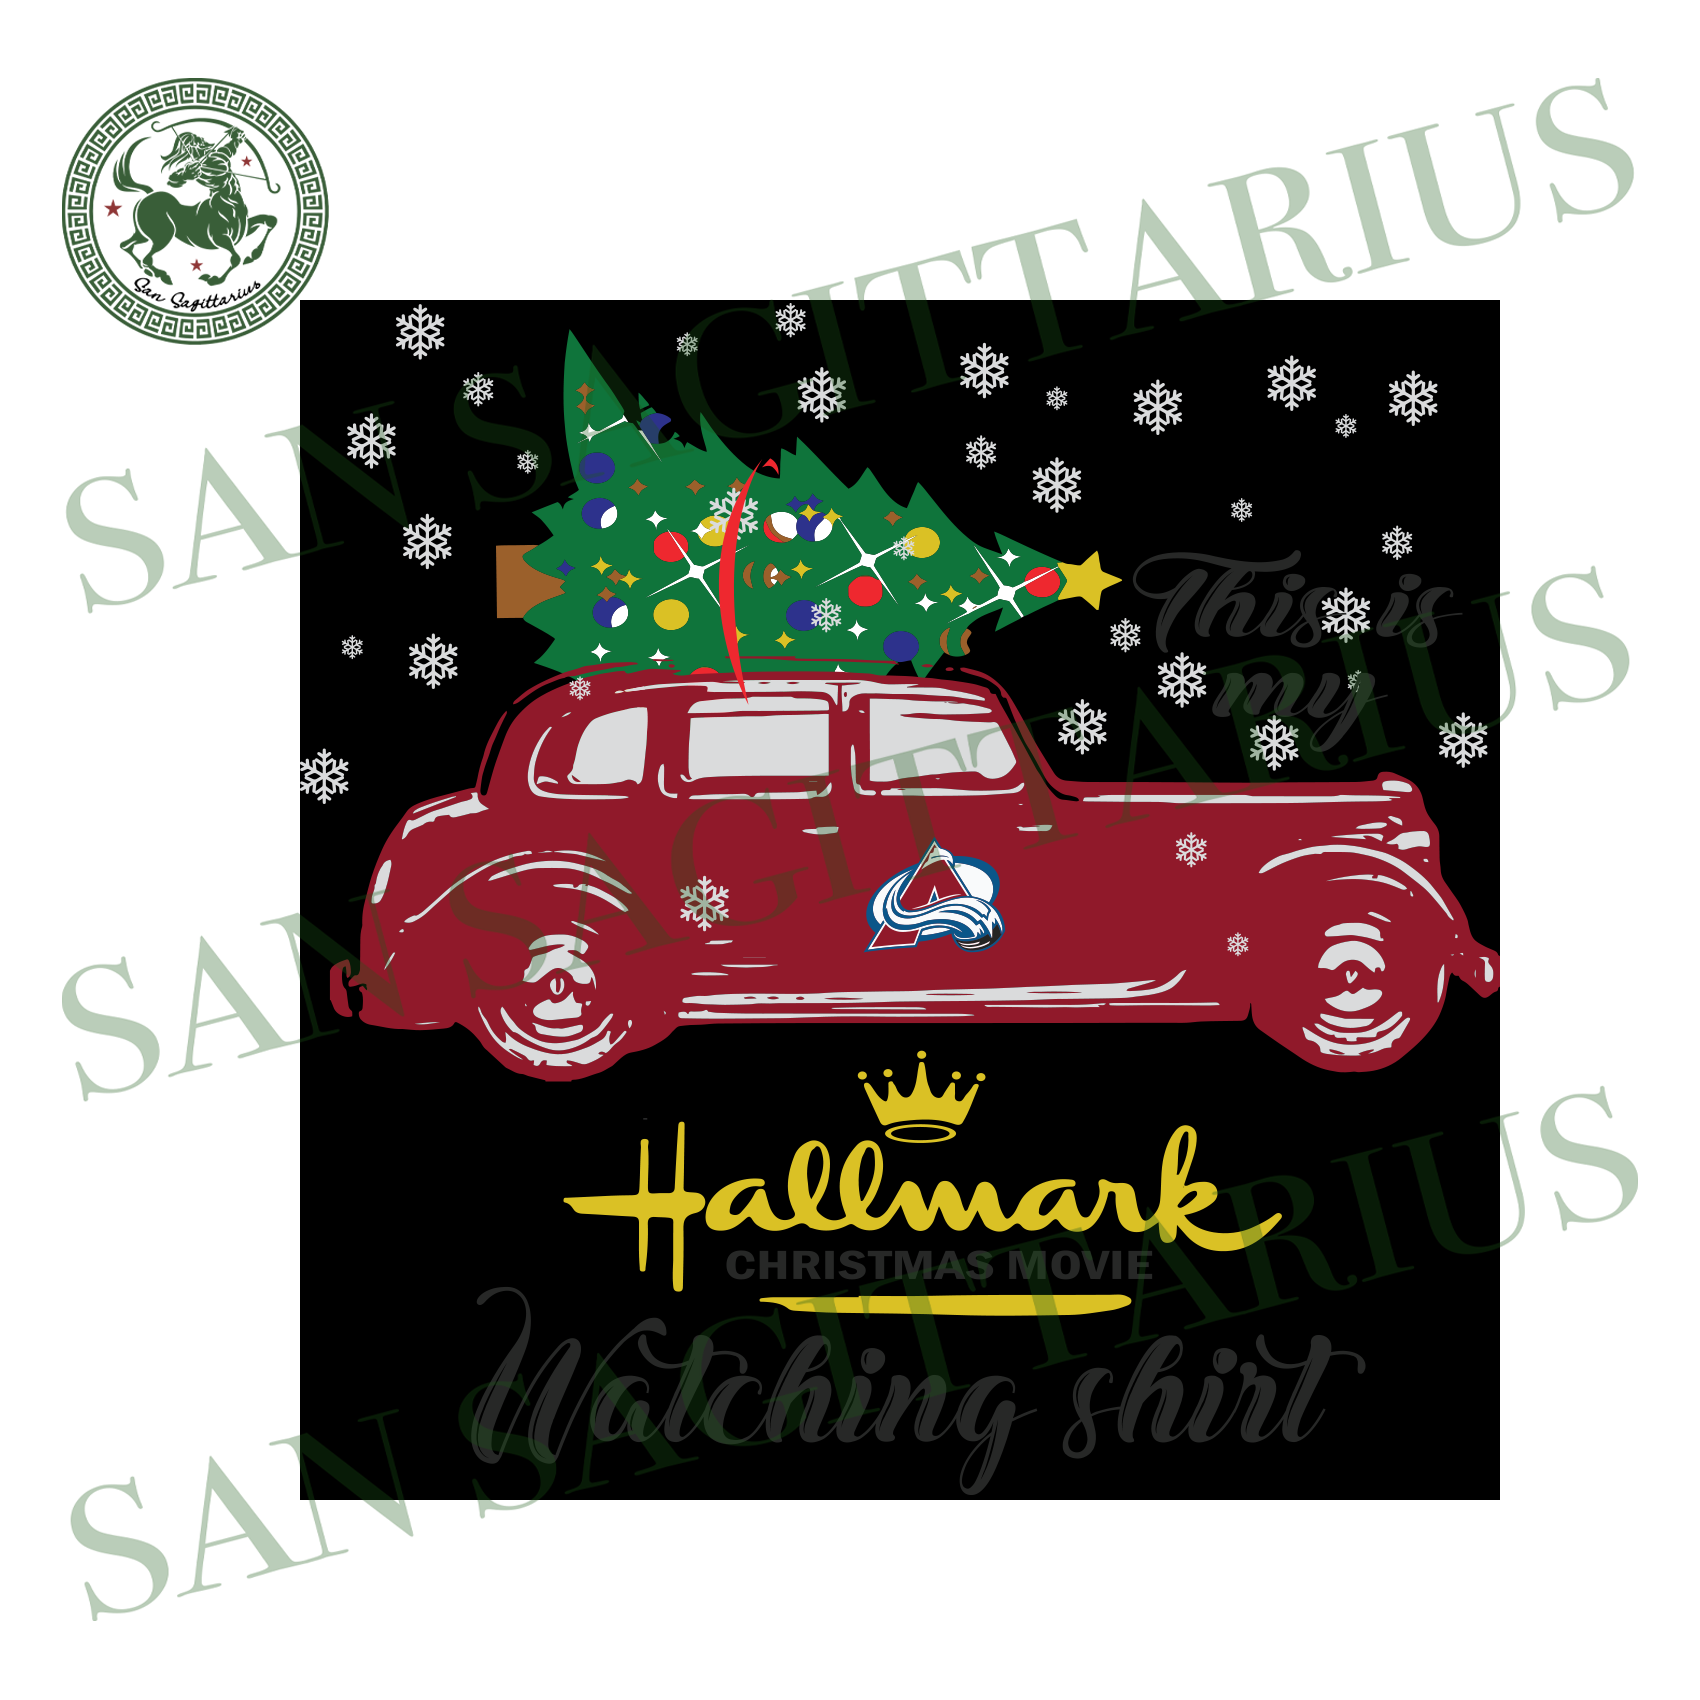 Colorado Avalanche This Is My Hallmark Christmas Movie Watching Shirt, Sport Svg, Christmas Svg, Colorado Avalanche Svg, NHL Sport Svg, Colorado Avalanche NHL Svg, Colorado Avalanche NHL Gift